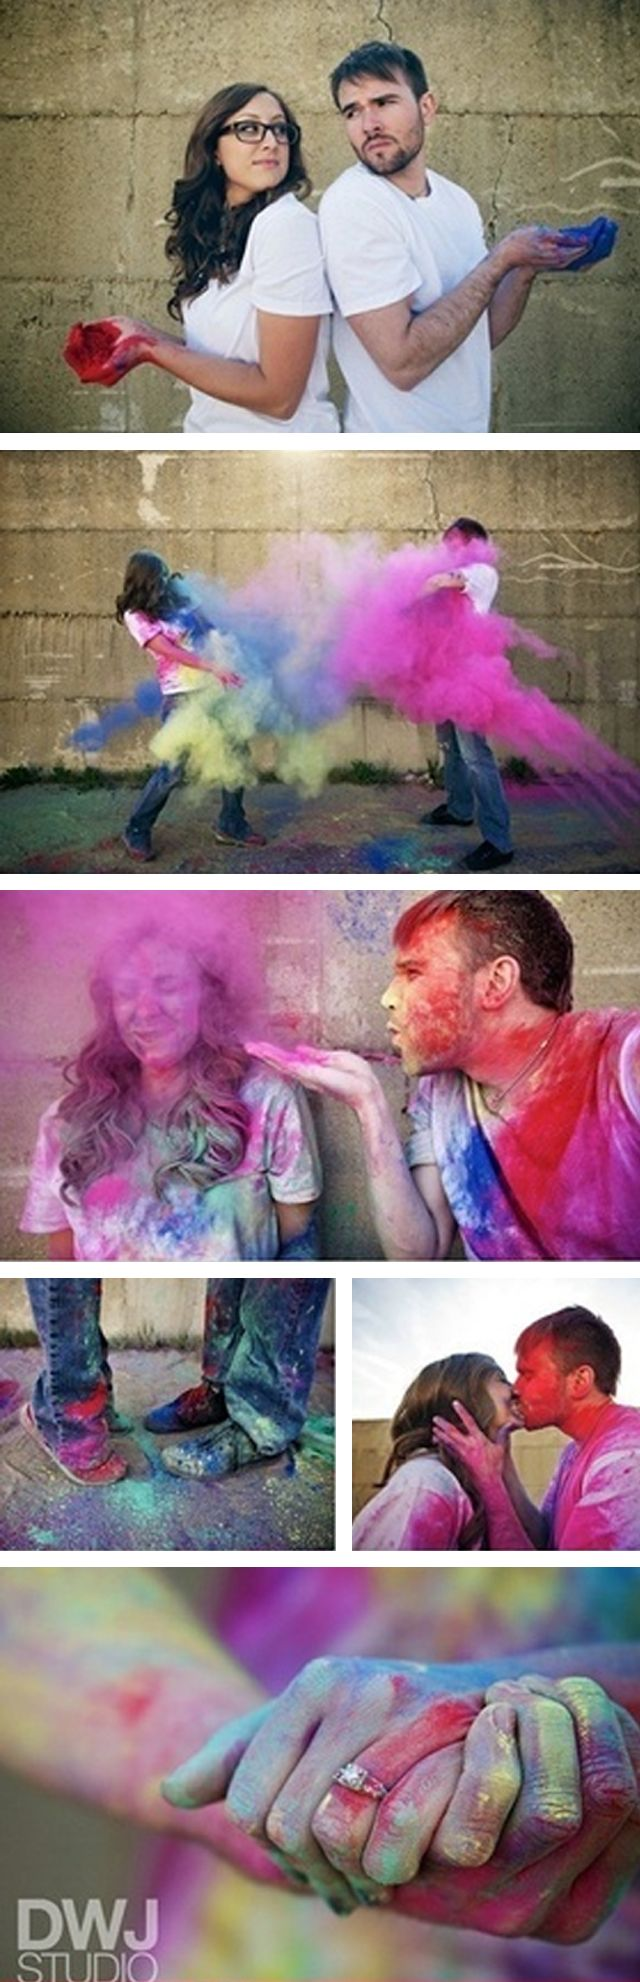 I like this #engagement shoot idea.  May want to research how to clean the ring beforehand to ensure no damage.  Would also want to do this by a body of water, or have a water fight afterwards to get clean.